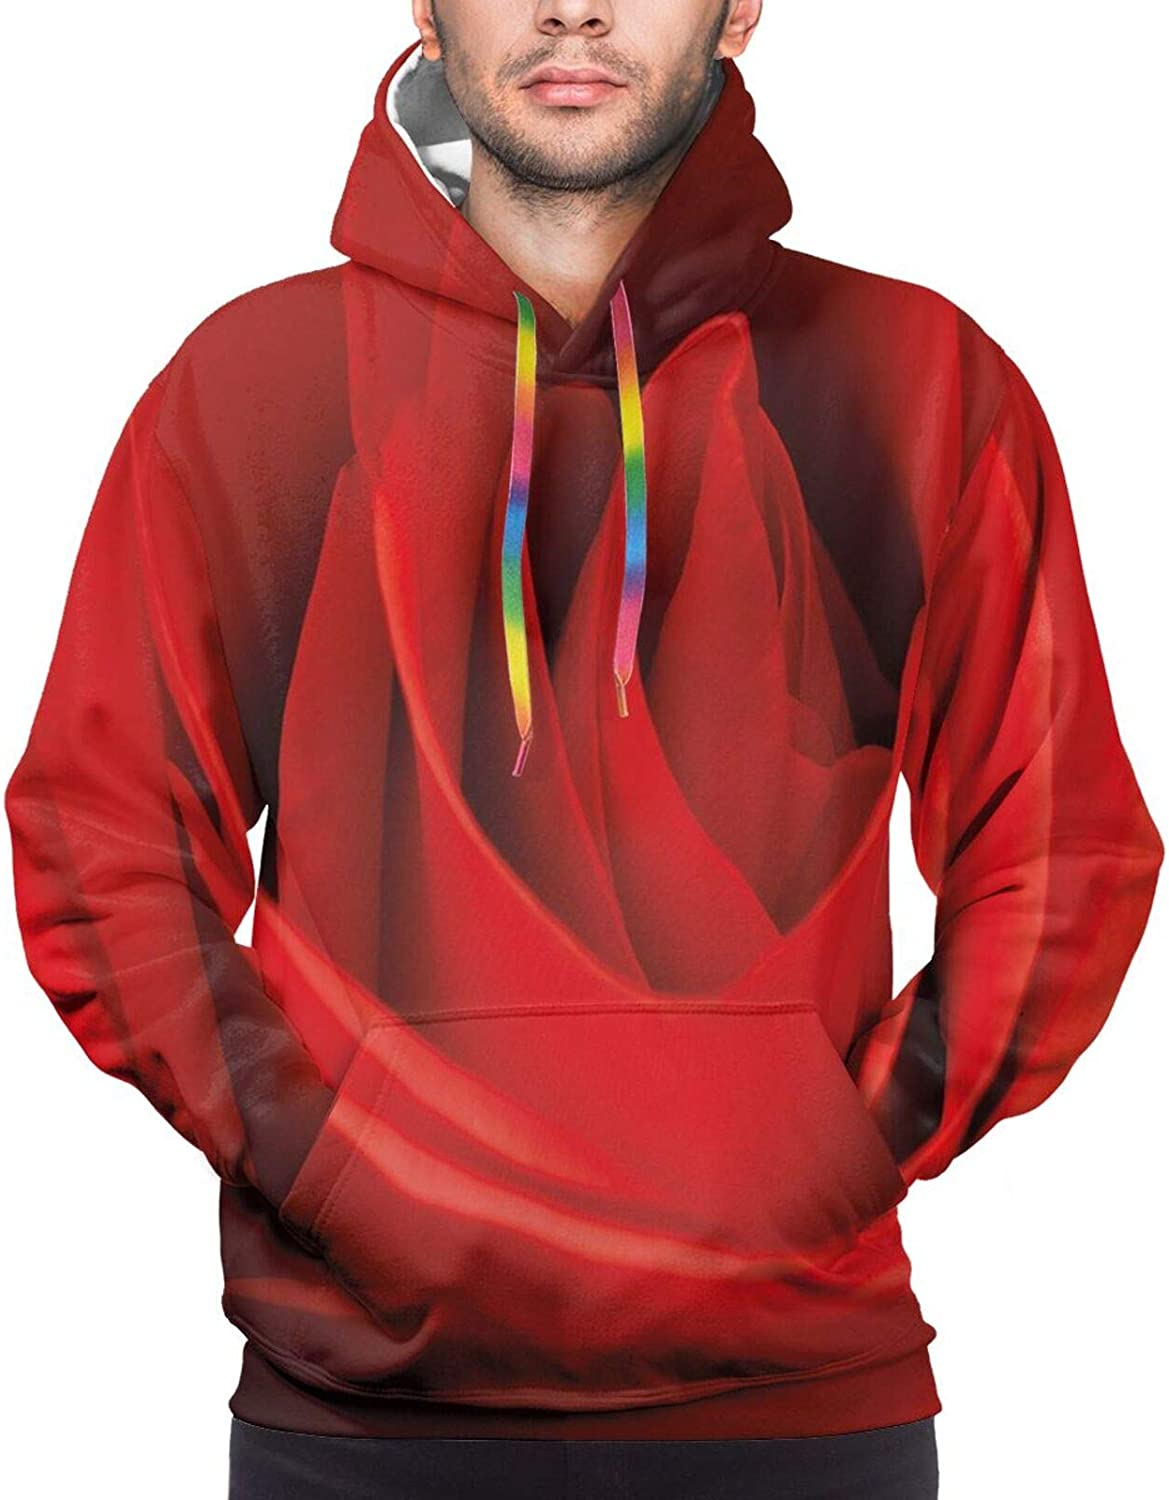 Men's Hoodies Sweatshirts,Close Up of A Red Rose Bloom Fresh Natural Beauty Love Valentines Day Couples Theme